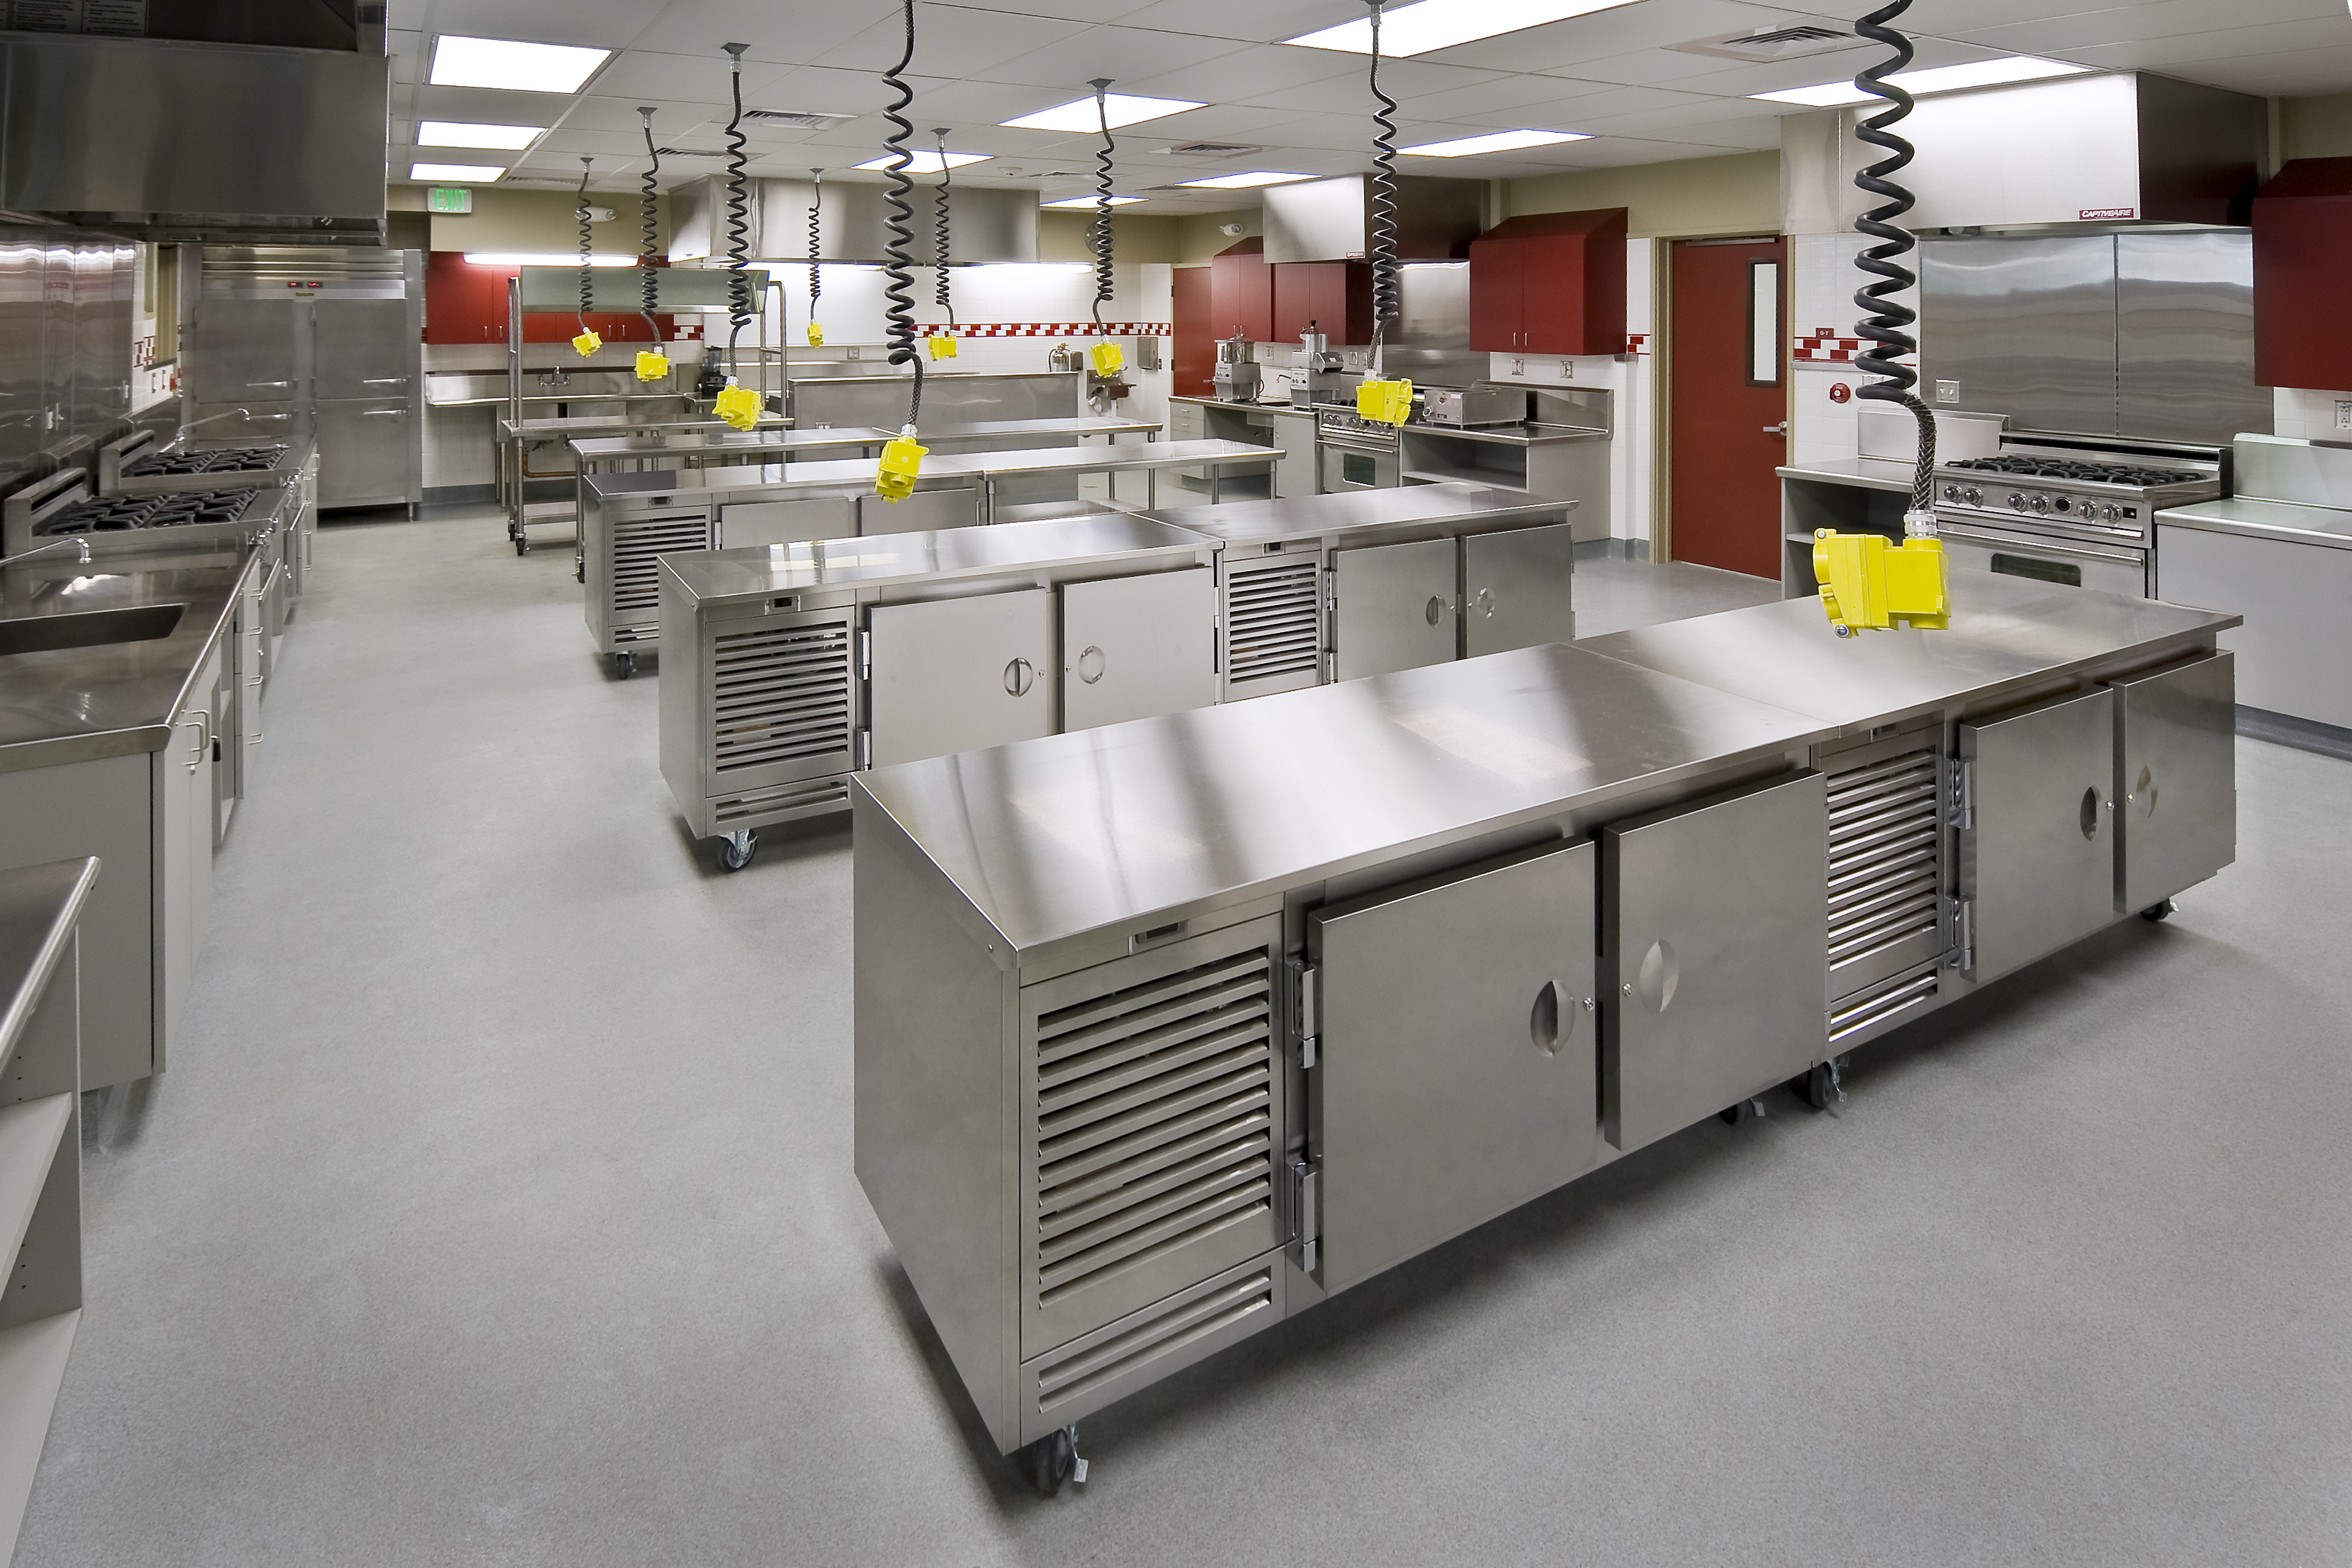 Our story carpkitchen for School kitchen designs